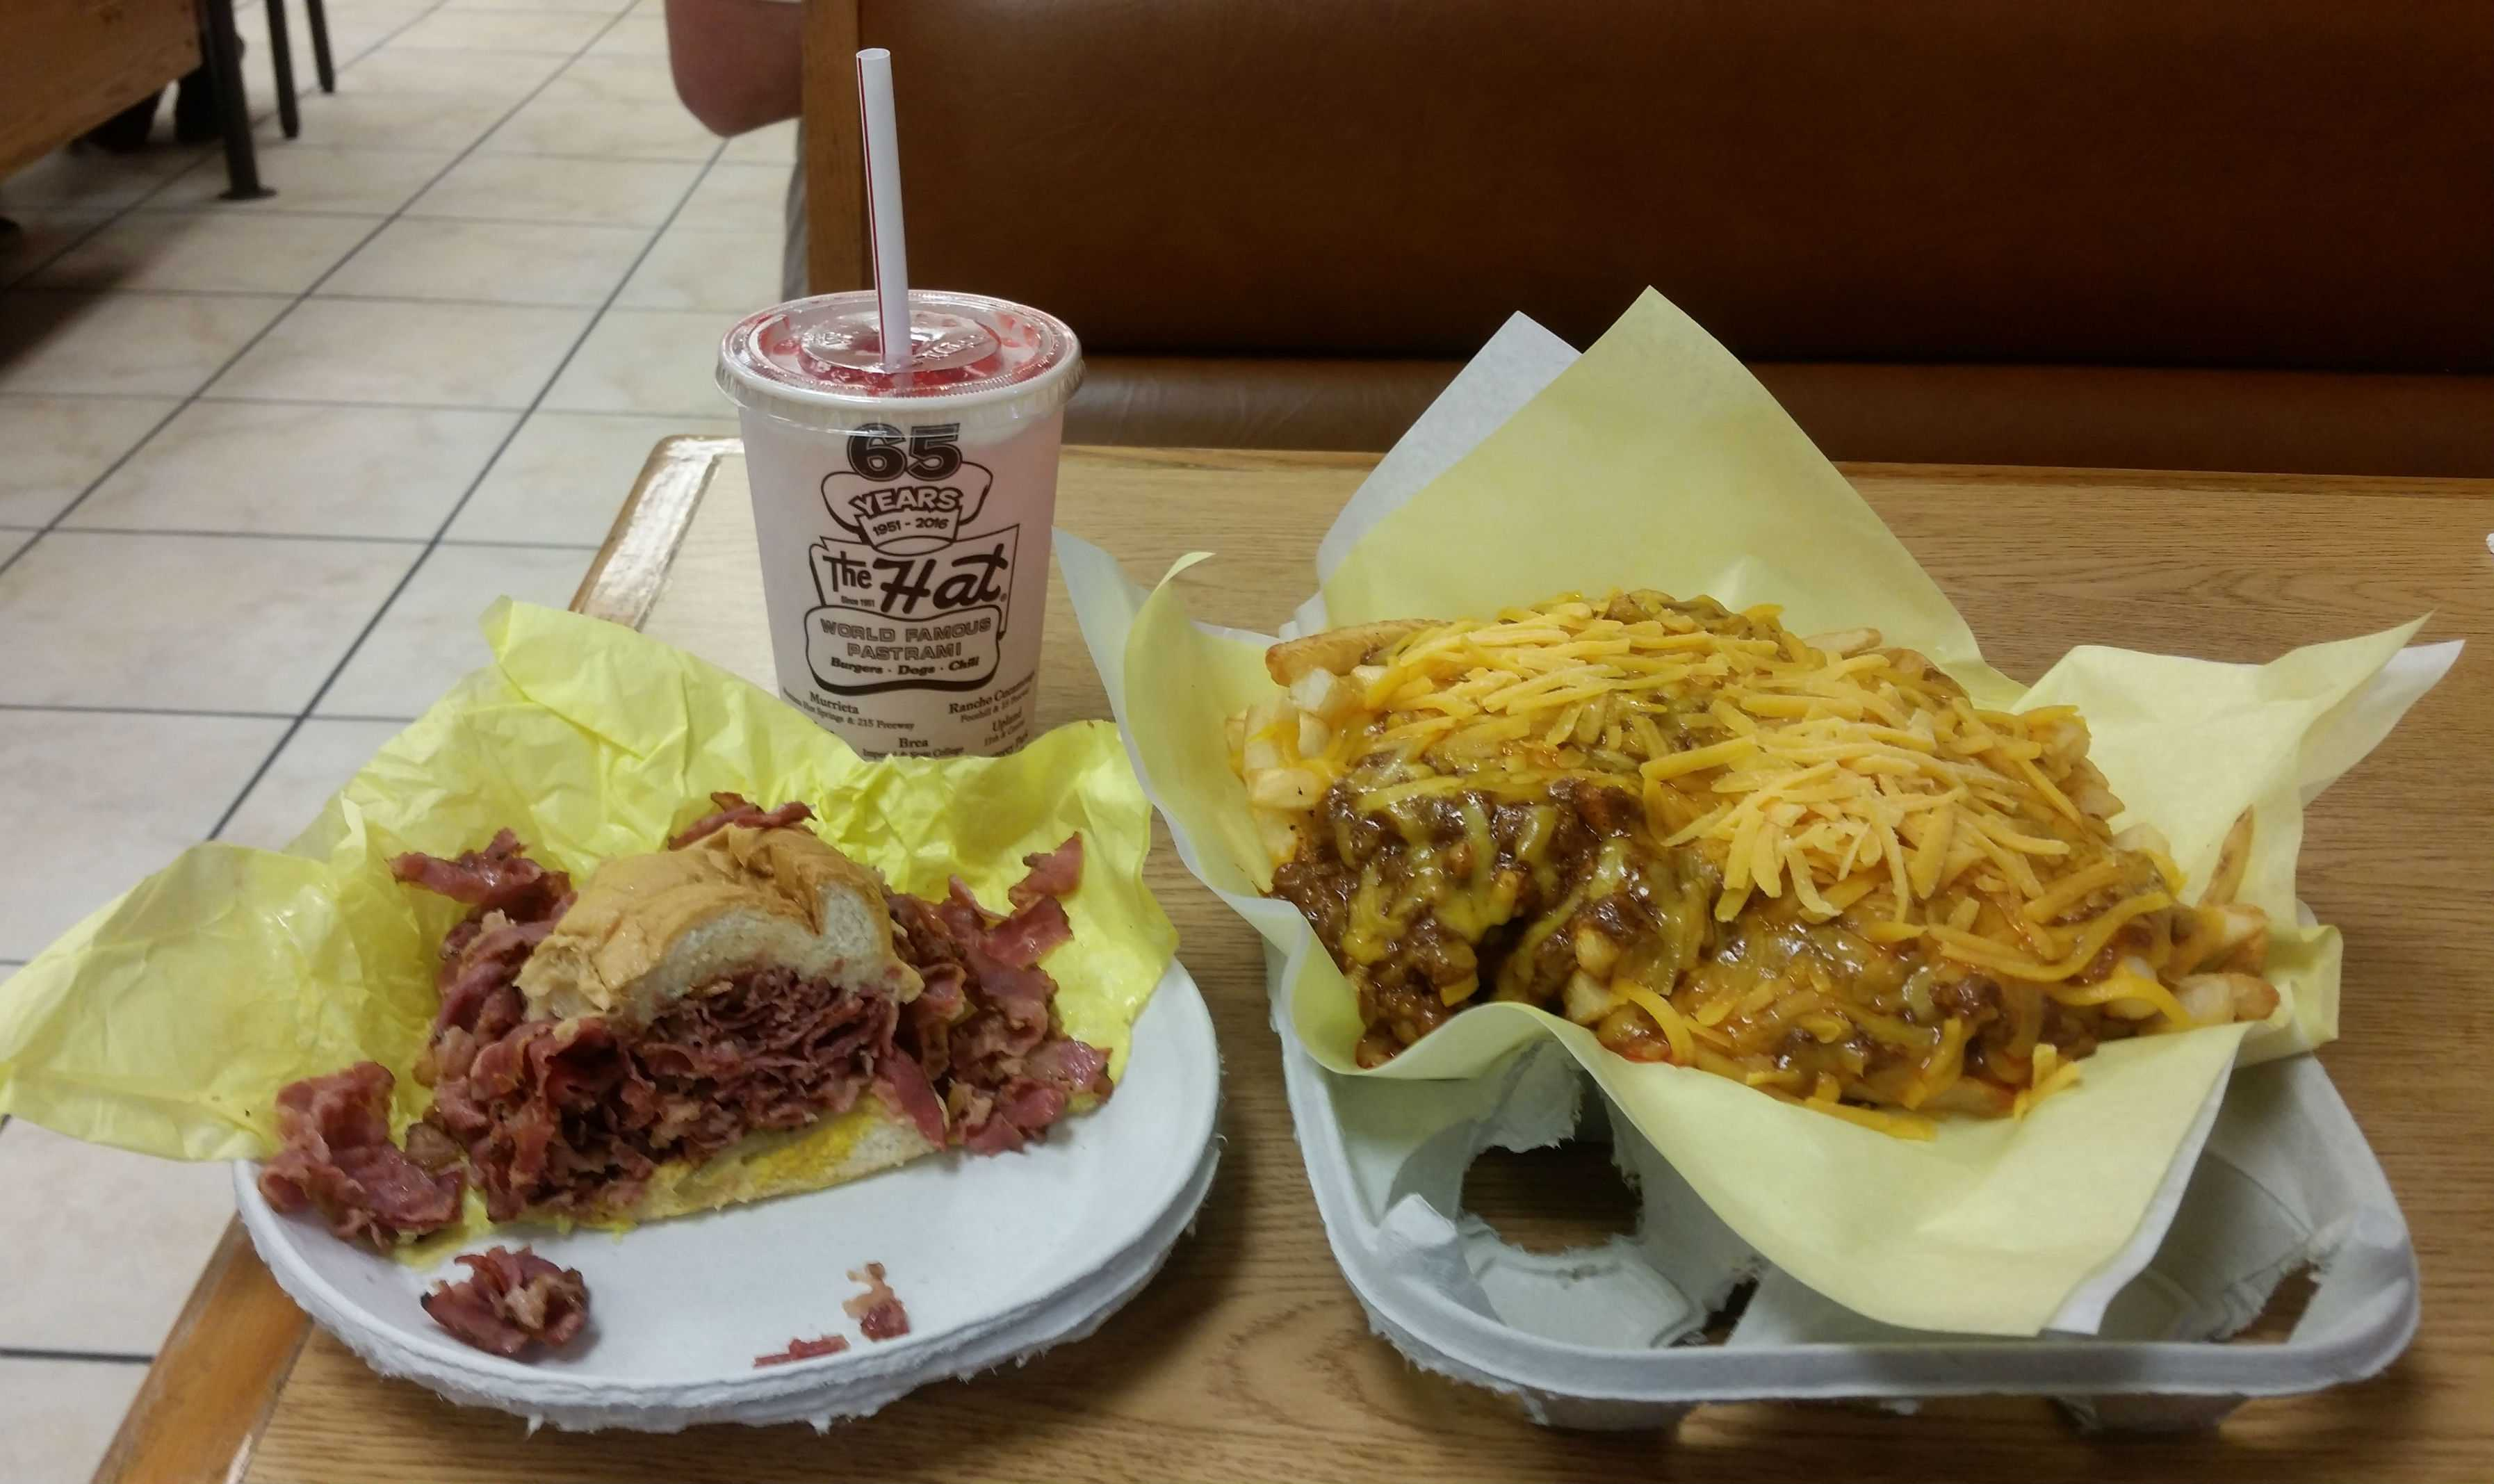 World famous pastrami sandwich and chili cheese fries from the Hat.